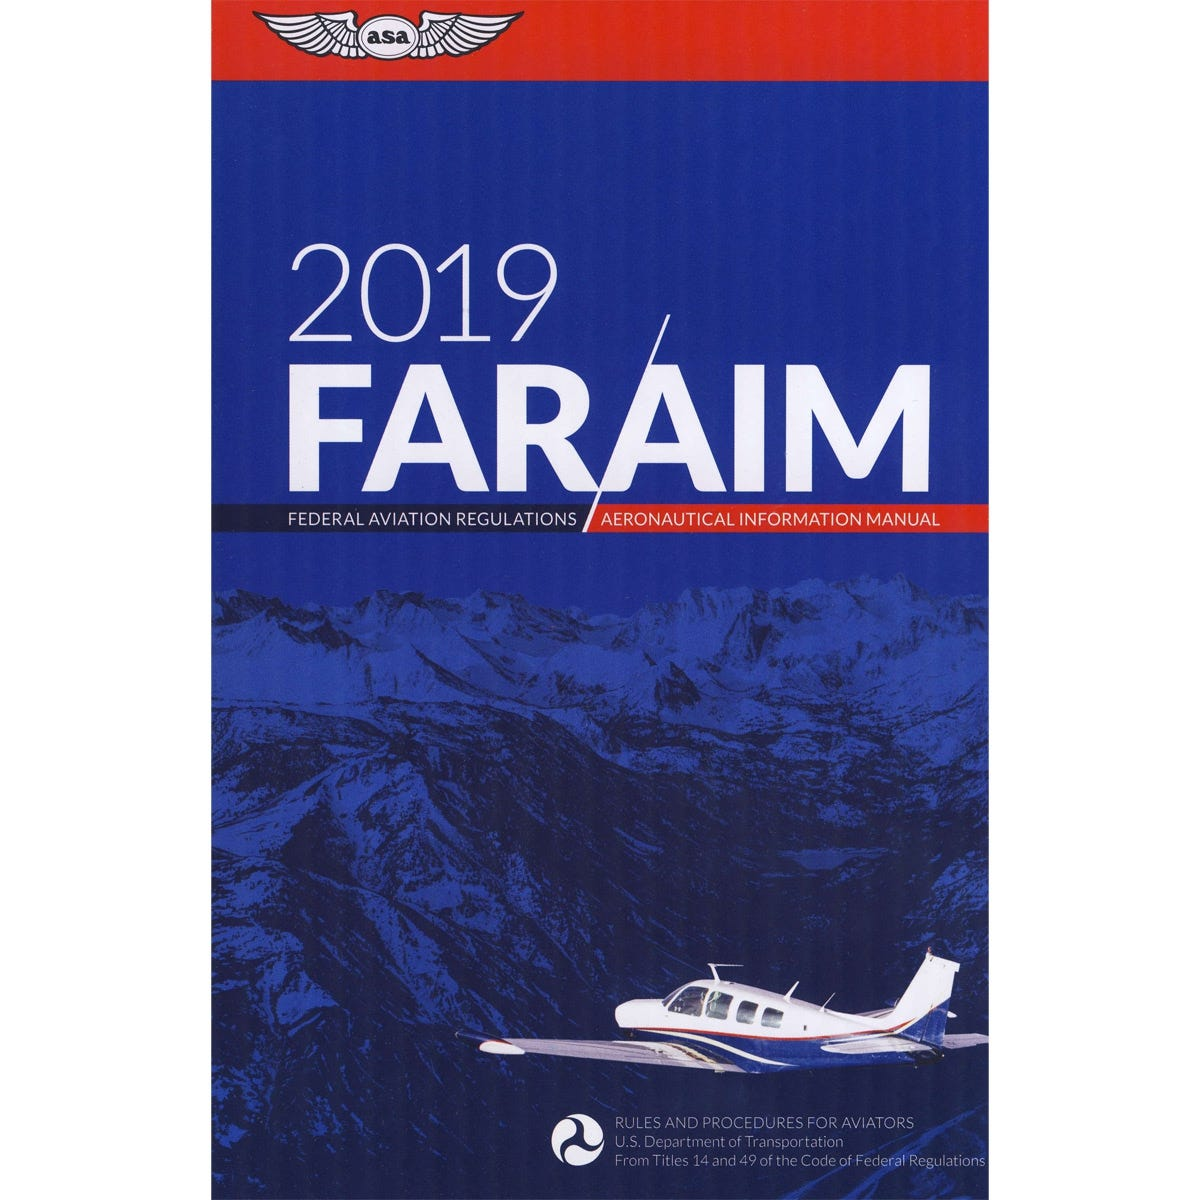 Far aim 2019 asa from sportys pilot shop more photos fandeluxe Image collections